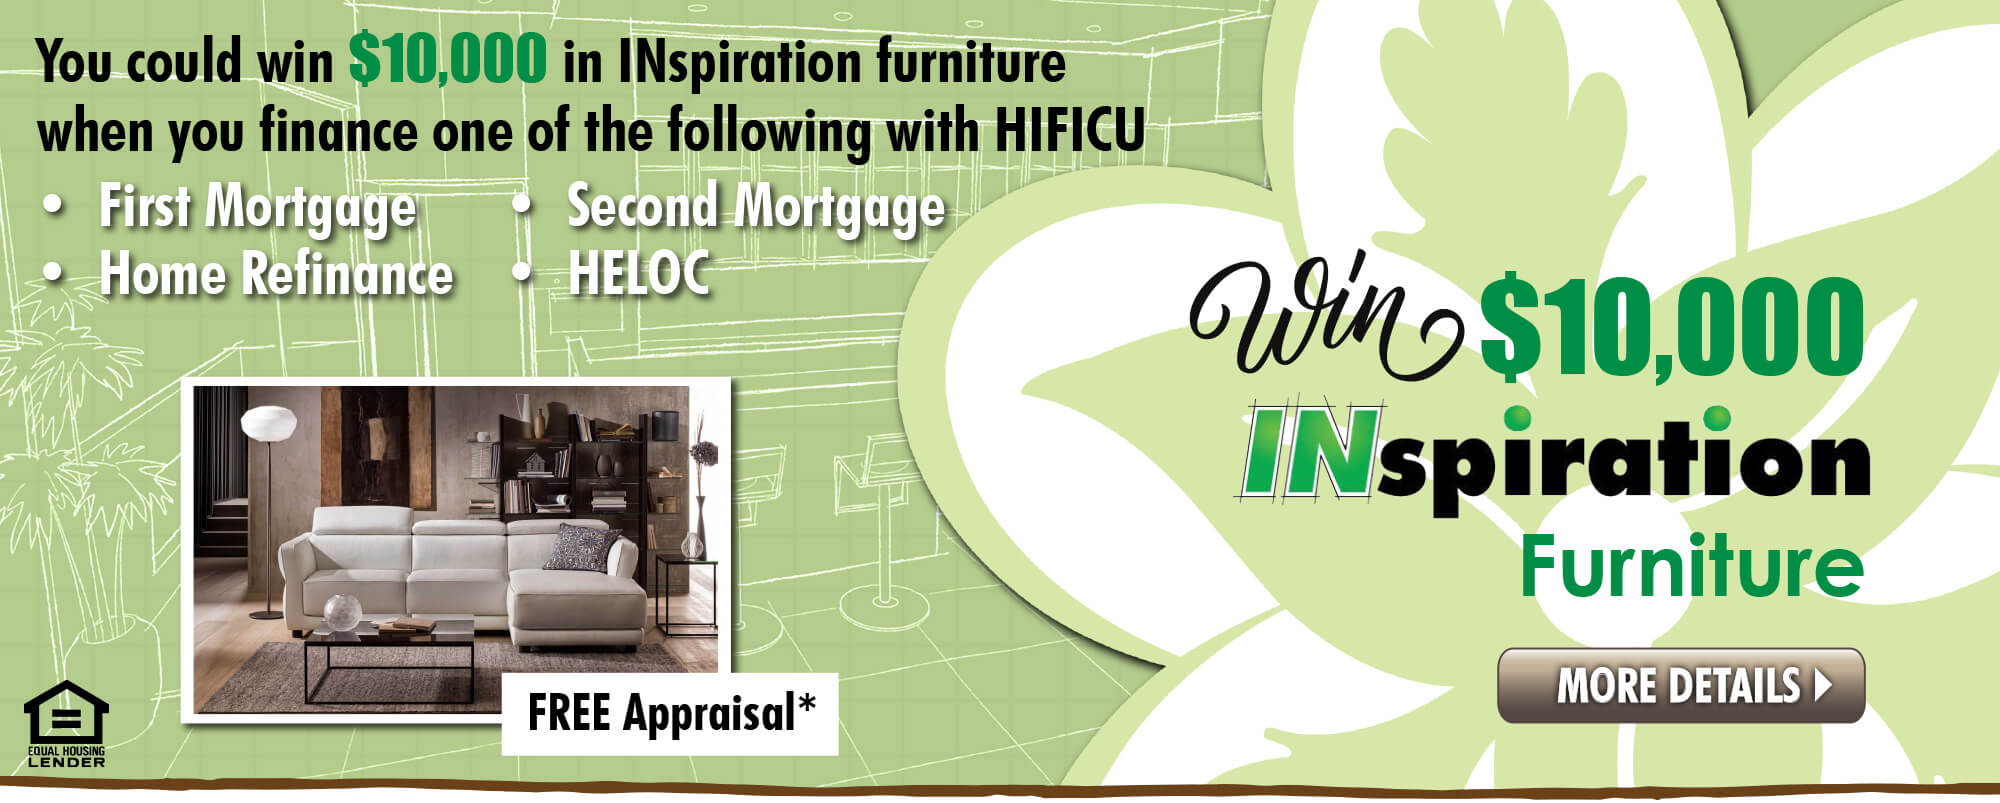 Win $10,000 worth of INspiration Furniture.  Click for more details!